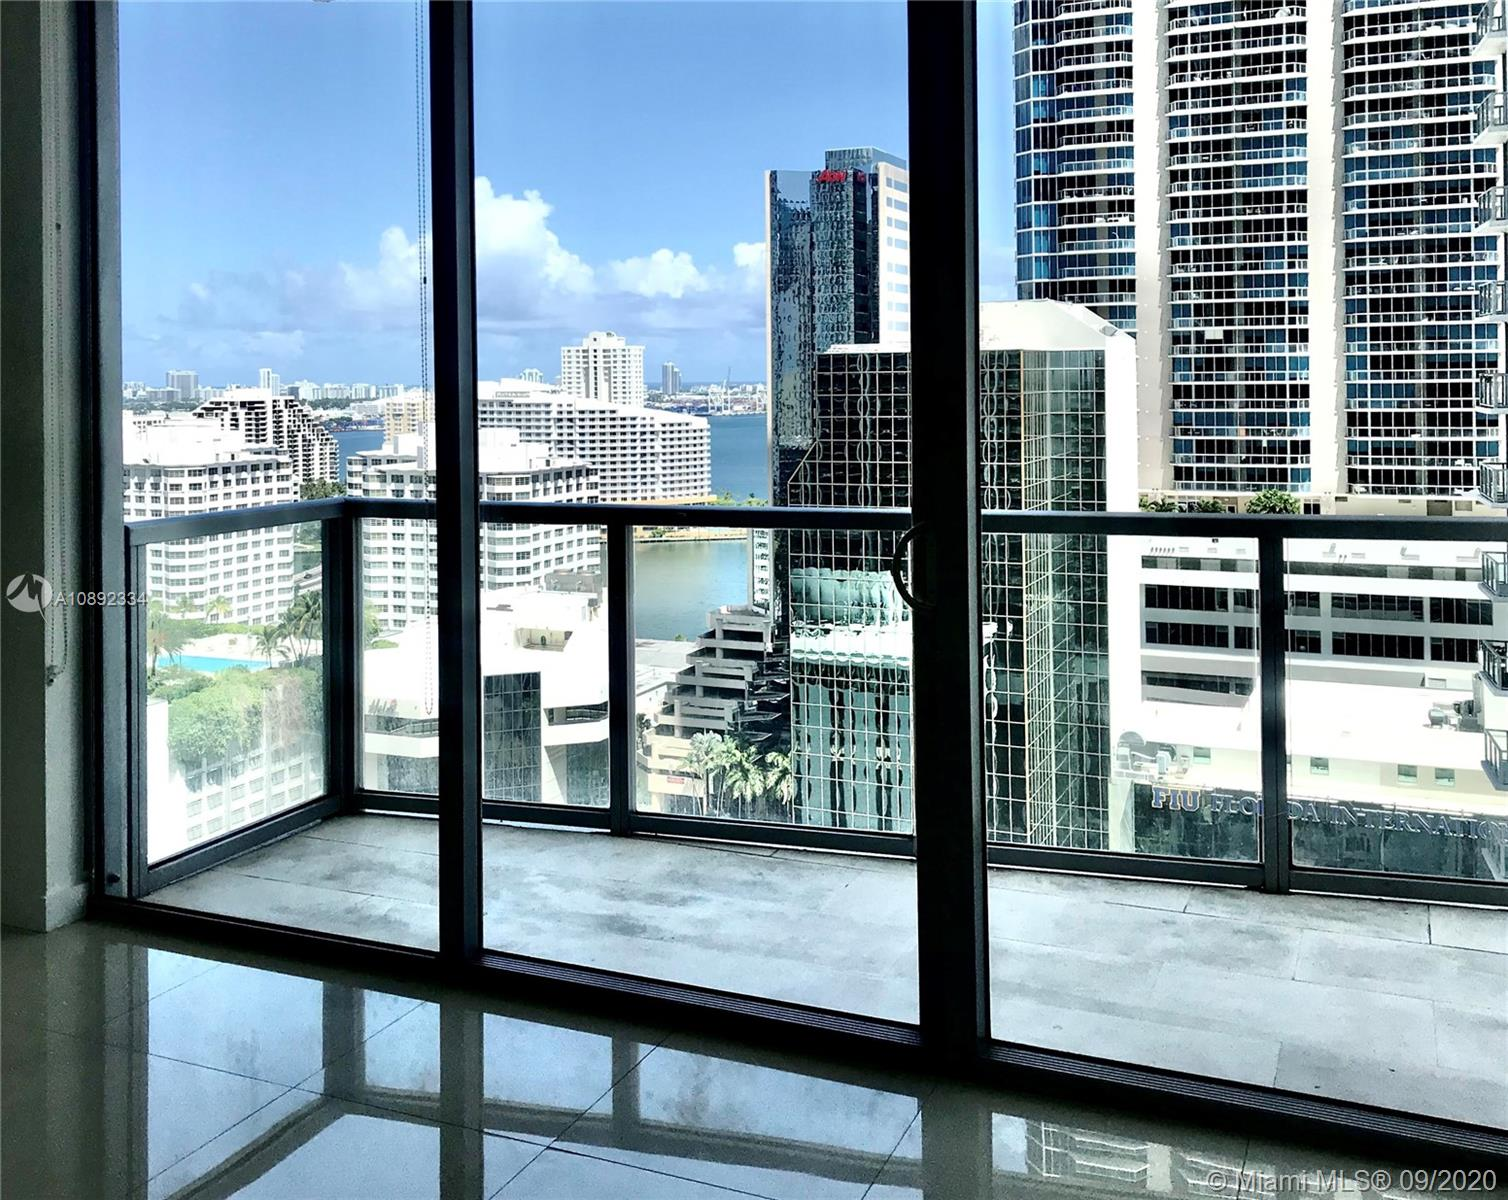 BEAUTIFUL and IMPECCABLE  1 BD/1 BR UNIT, GREAT CITY VIEWS, PORCELAIN FLOORS, EXTRA CLOSETS, ONE COVERED ASSIGNED PARKING SPACE. FULL AMENITIES BLDG: GYM & SWIMMING POOL. STEPS FROM MARY BRICKELL VILLAGE, BRICKELL CITY CENTRE, METRORAIL & METROMOVER * Per Owner request, no pets allowed in the unit* Owner requires First Month of Rent, Last Month of Rent & One month of Security Deposit. Attached Rental Application Package. The Condominium Association does not require Security Deposit for common areas. Tenant to pay the move-in fees required by Condominium Association. BASIC CABLE included in the rent. INTERNET not included in the rent.